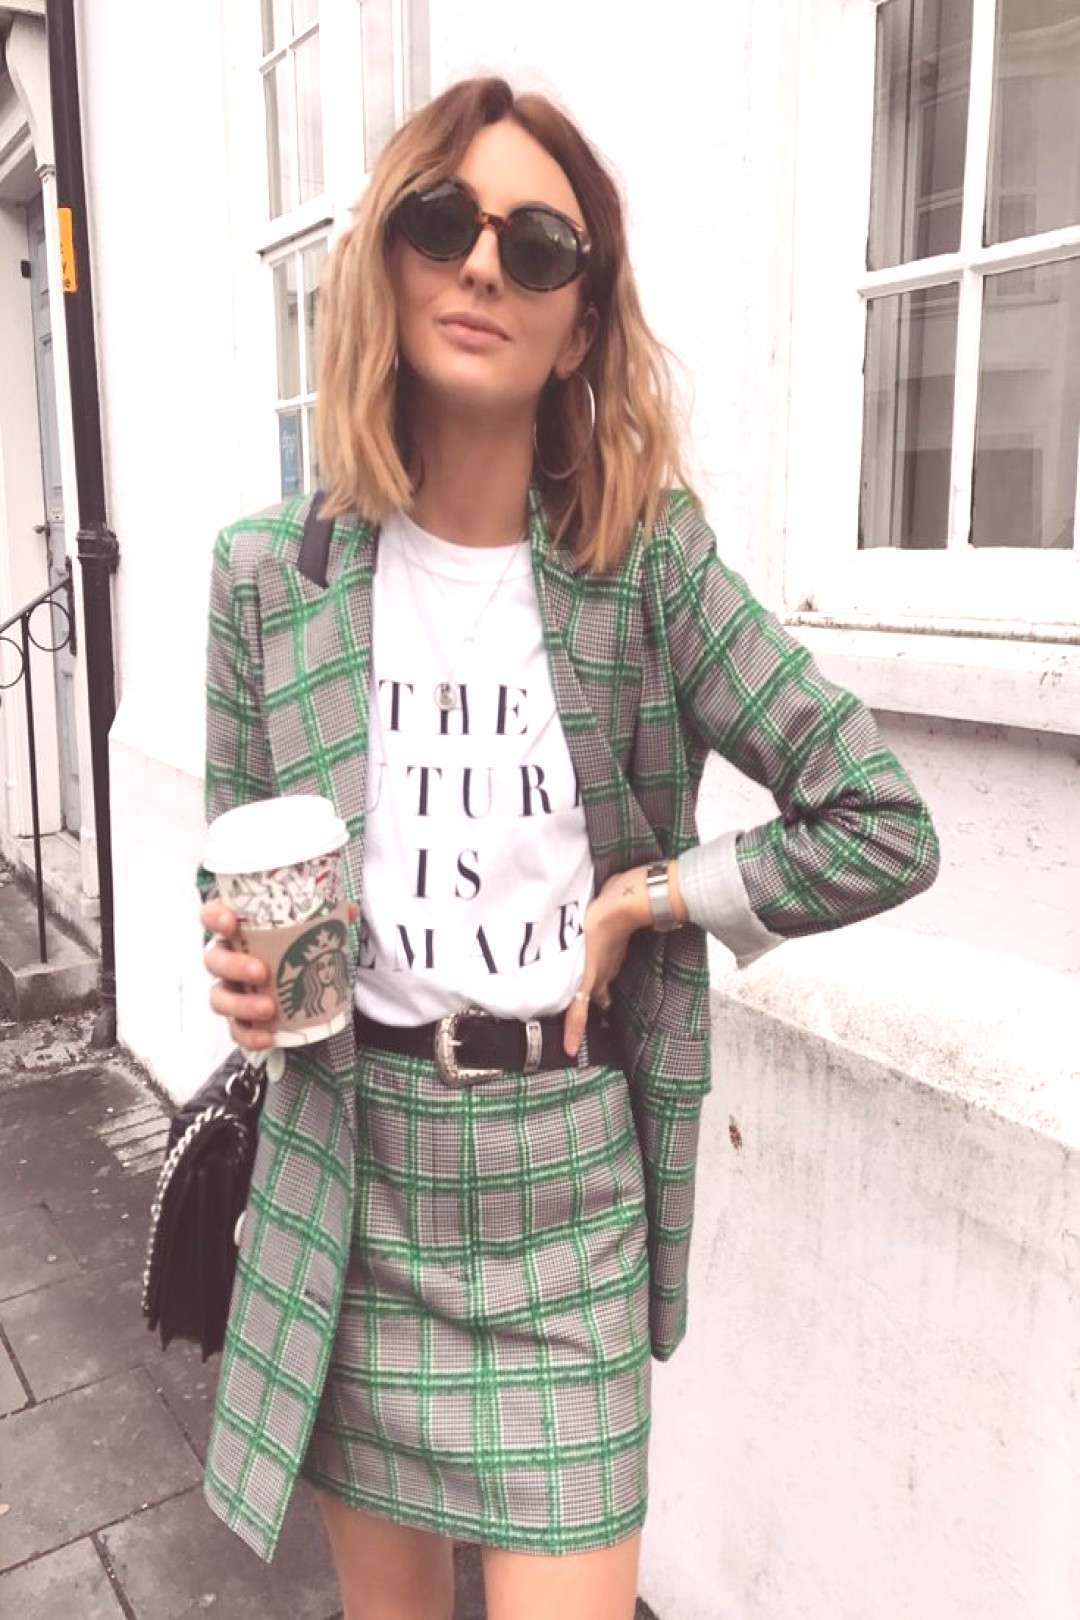 Fashion blogger, photography, trendy outfit, casual style, spring fashion, date night outfits, summ